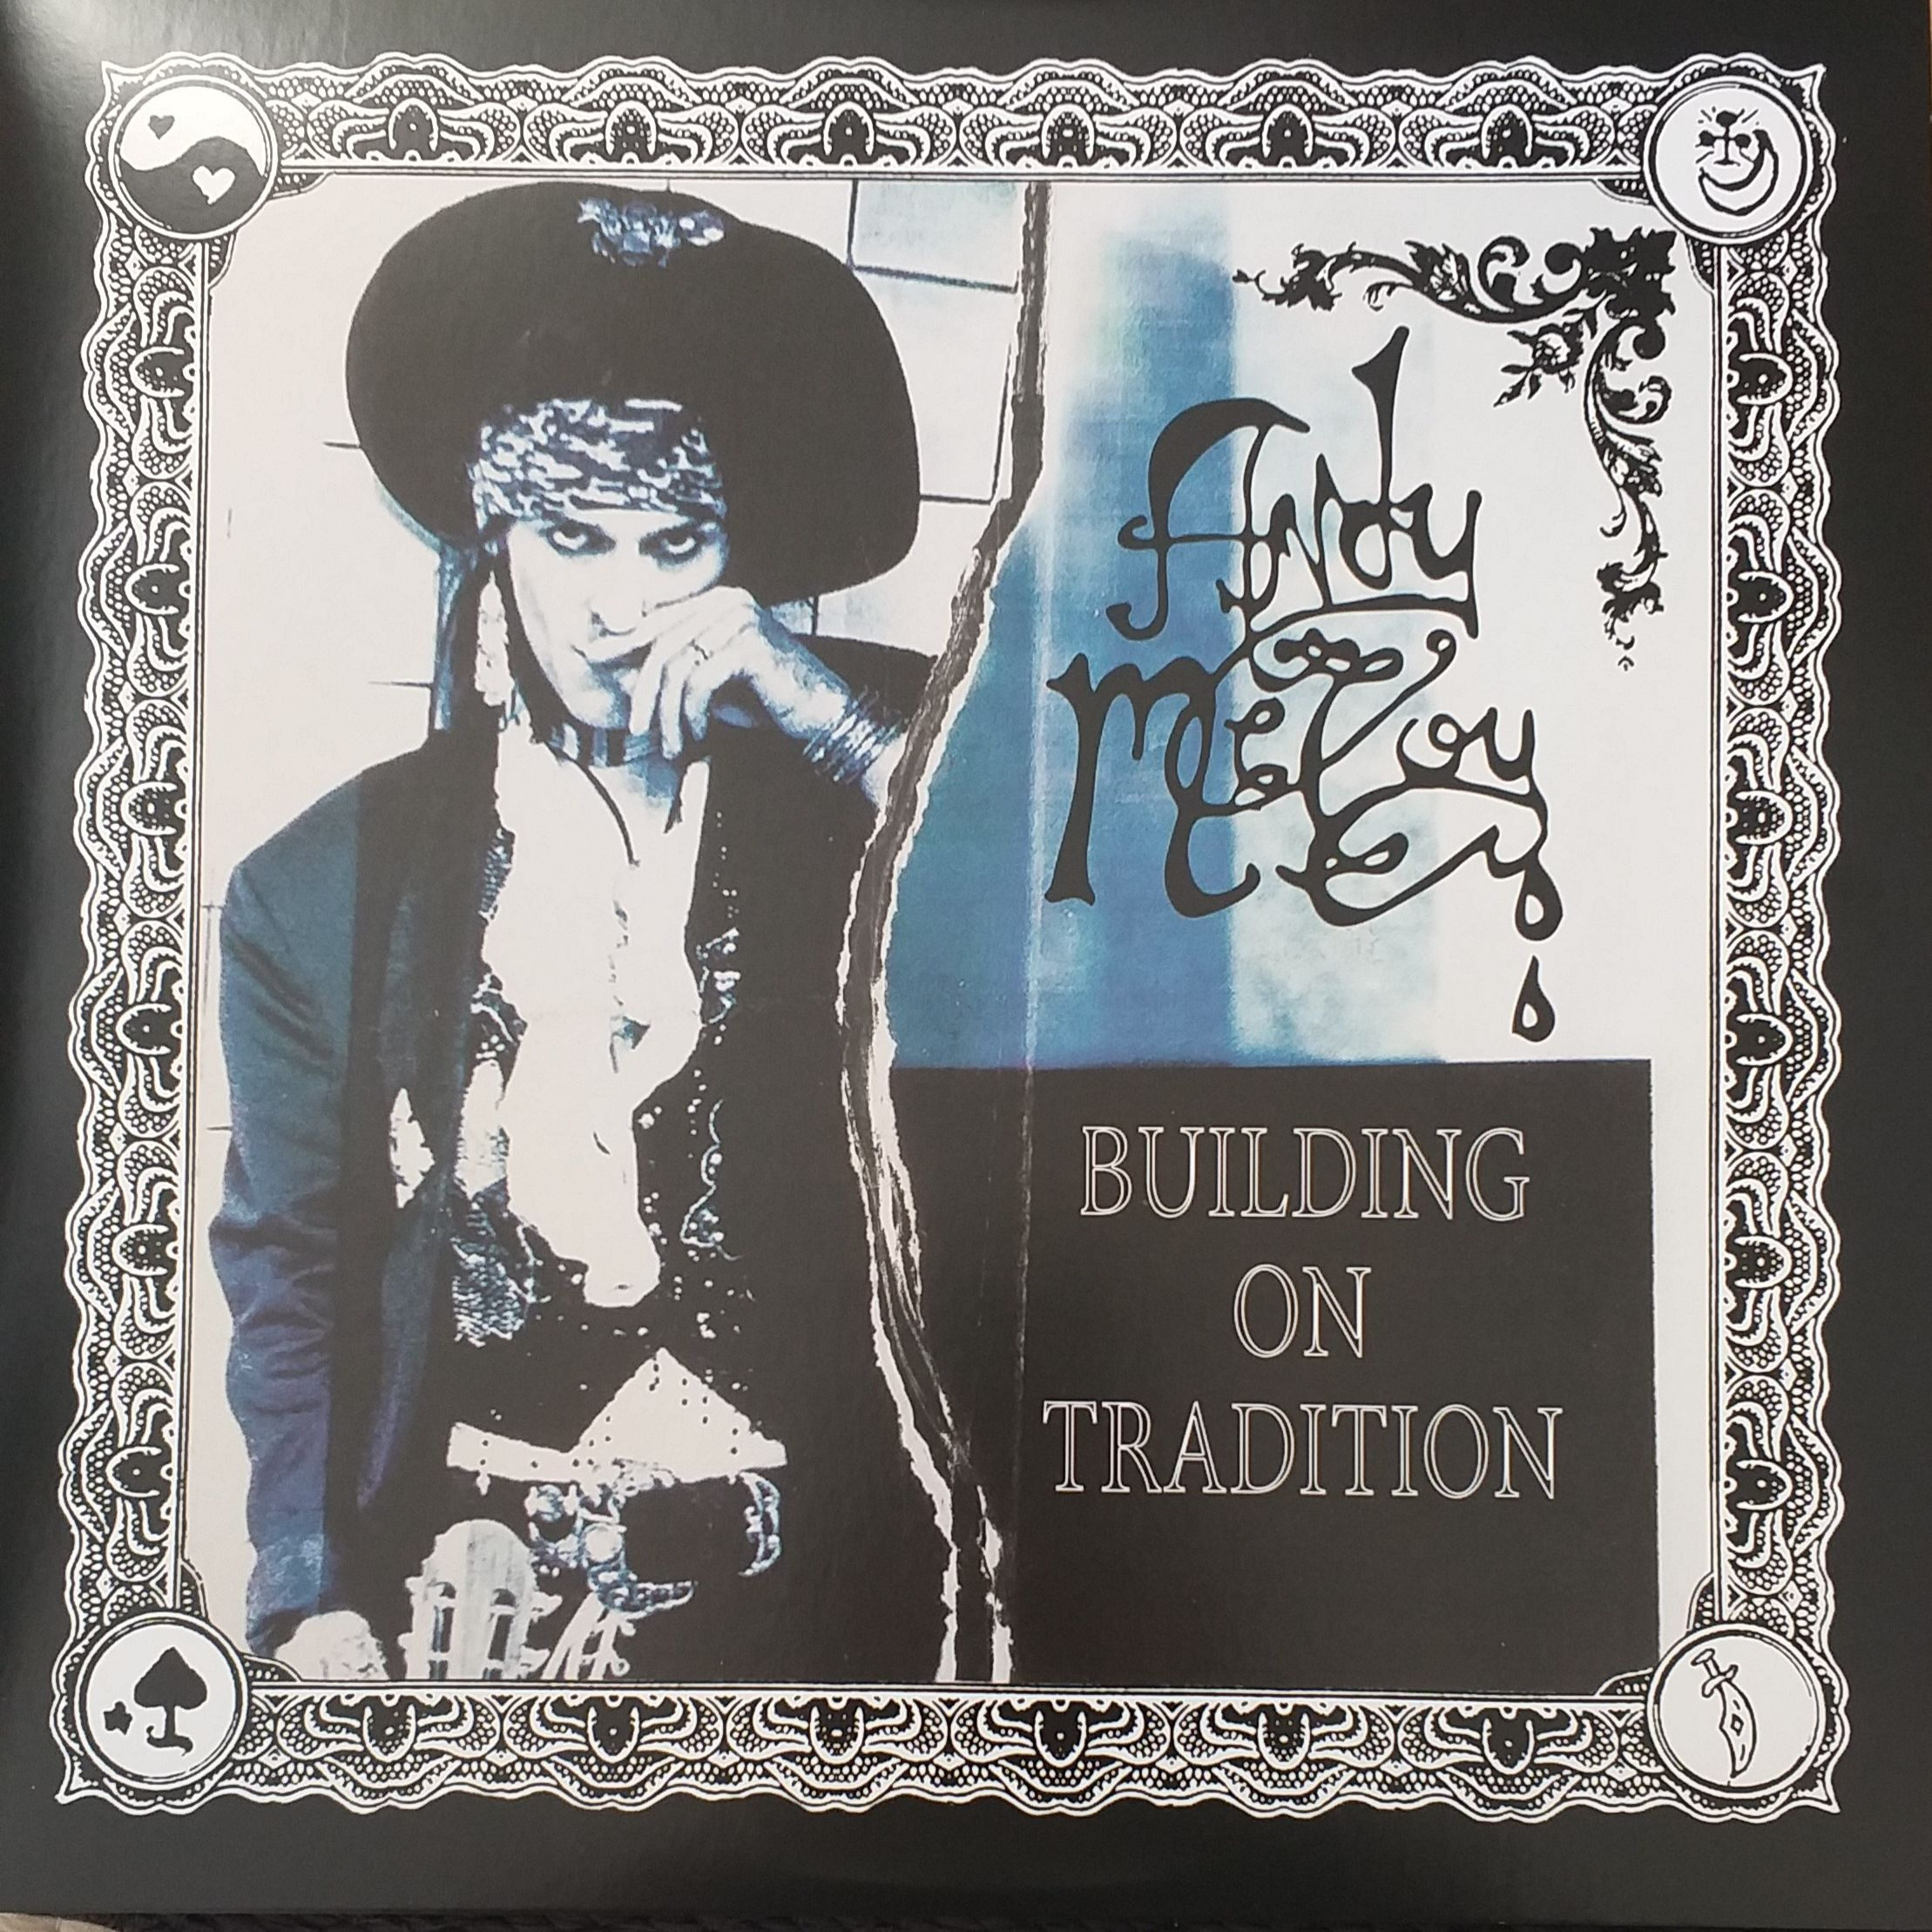 Andy Mccoy  Building on tradition LP undefined